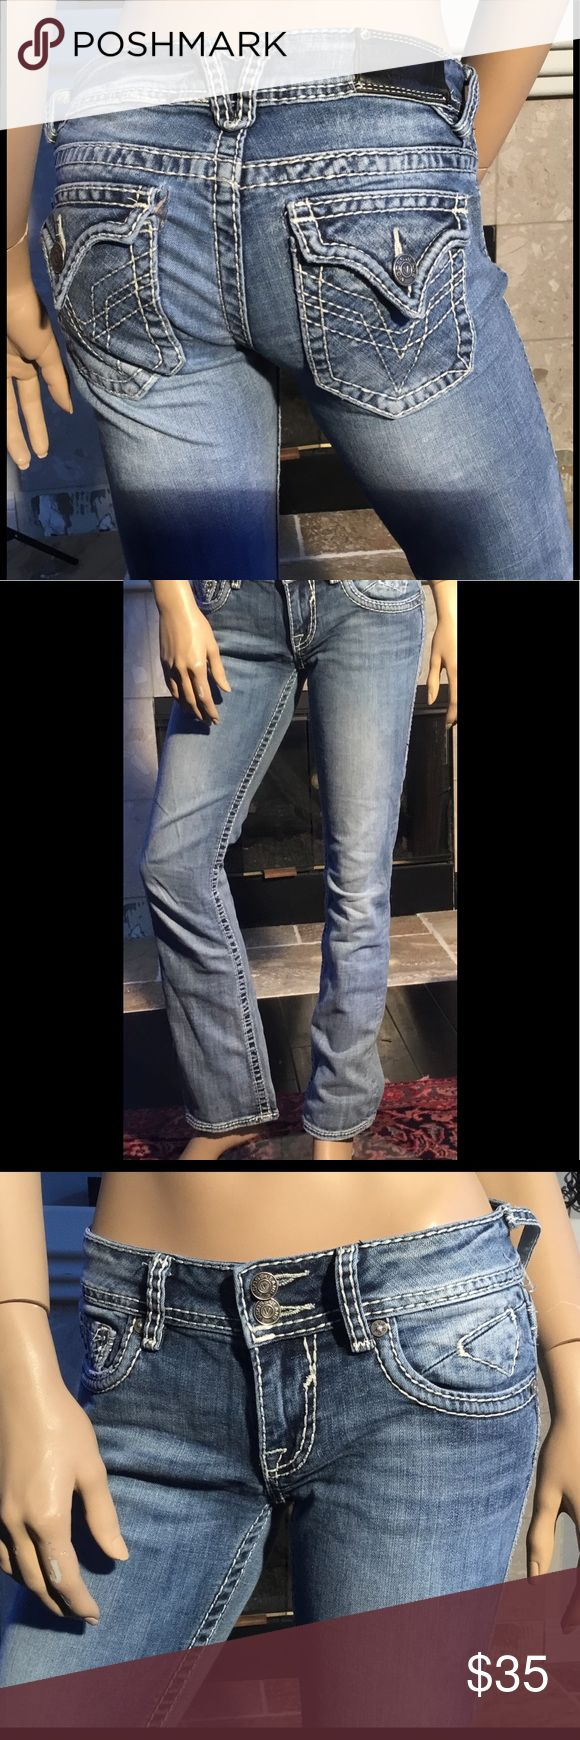 """VIGOSS """"THE NEW YORKER"""" STRAIGHT LEG JEAN SZ 26 VIGOSS """"THE NEW YORKER"""" Straight Leg Jean Women's Jeans Size 26 Inseam 31 Rise 7"""" Waist 15 Factory Distressed In Great Shape with no rips, tears or stains Hems show a little wear but does not take away from these jeans. See photos. Comes from a smoke free home Vigoss Jeans Straight Leg"""